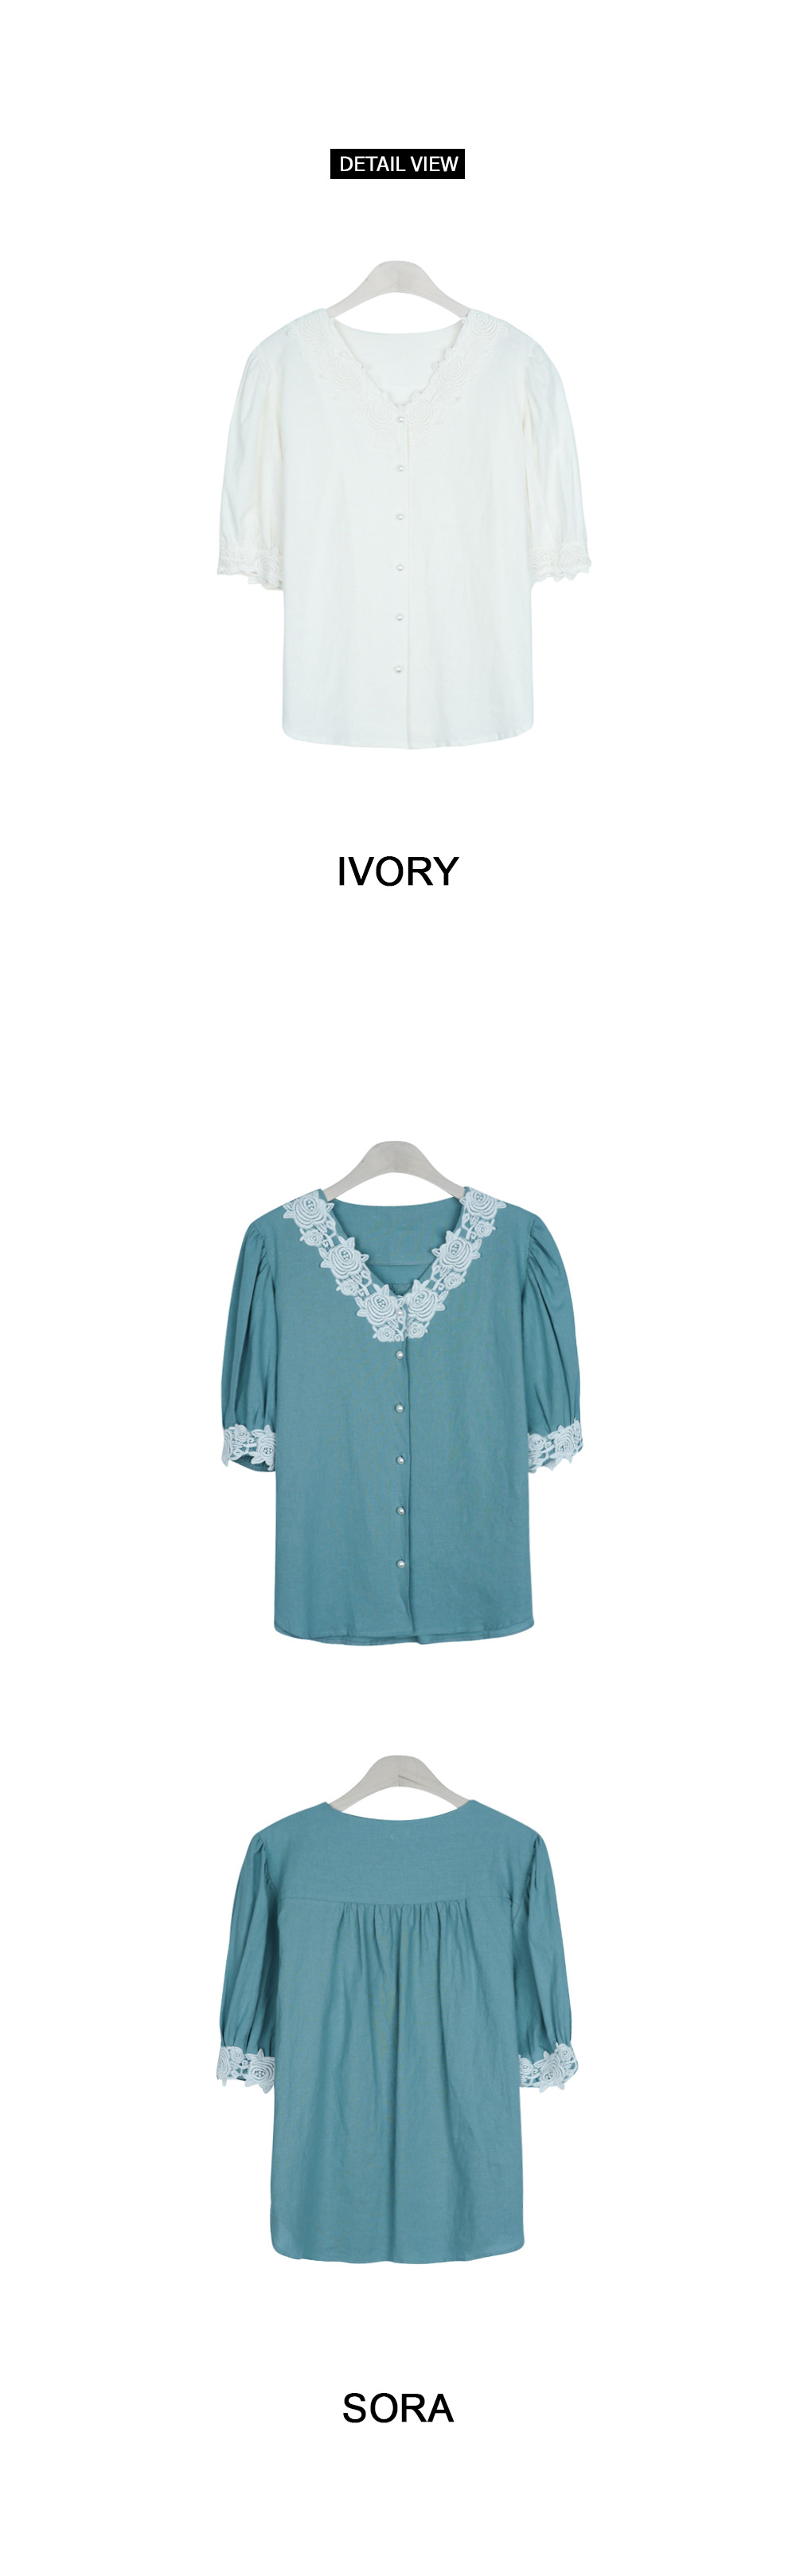 Rose Day Pearl Blouse